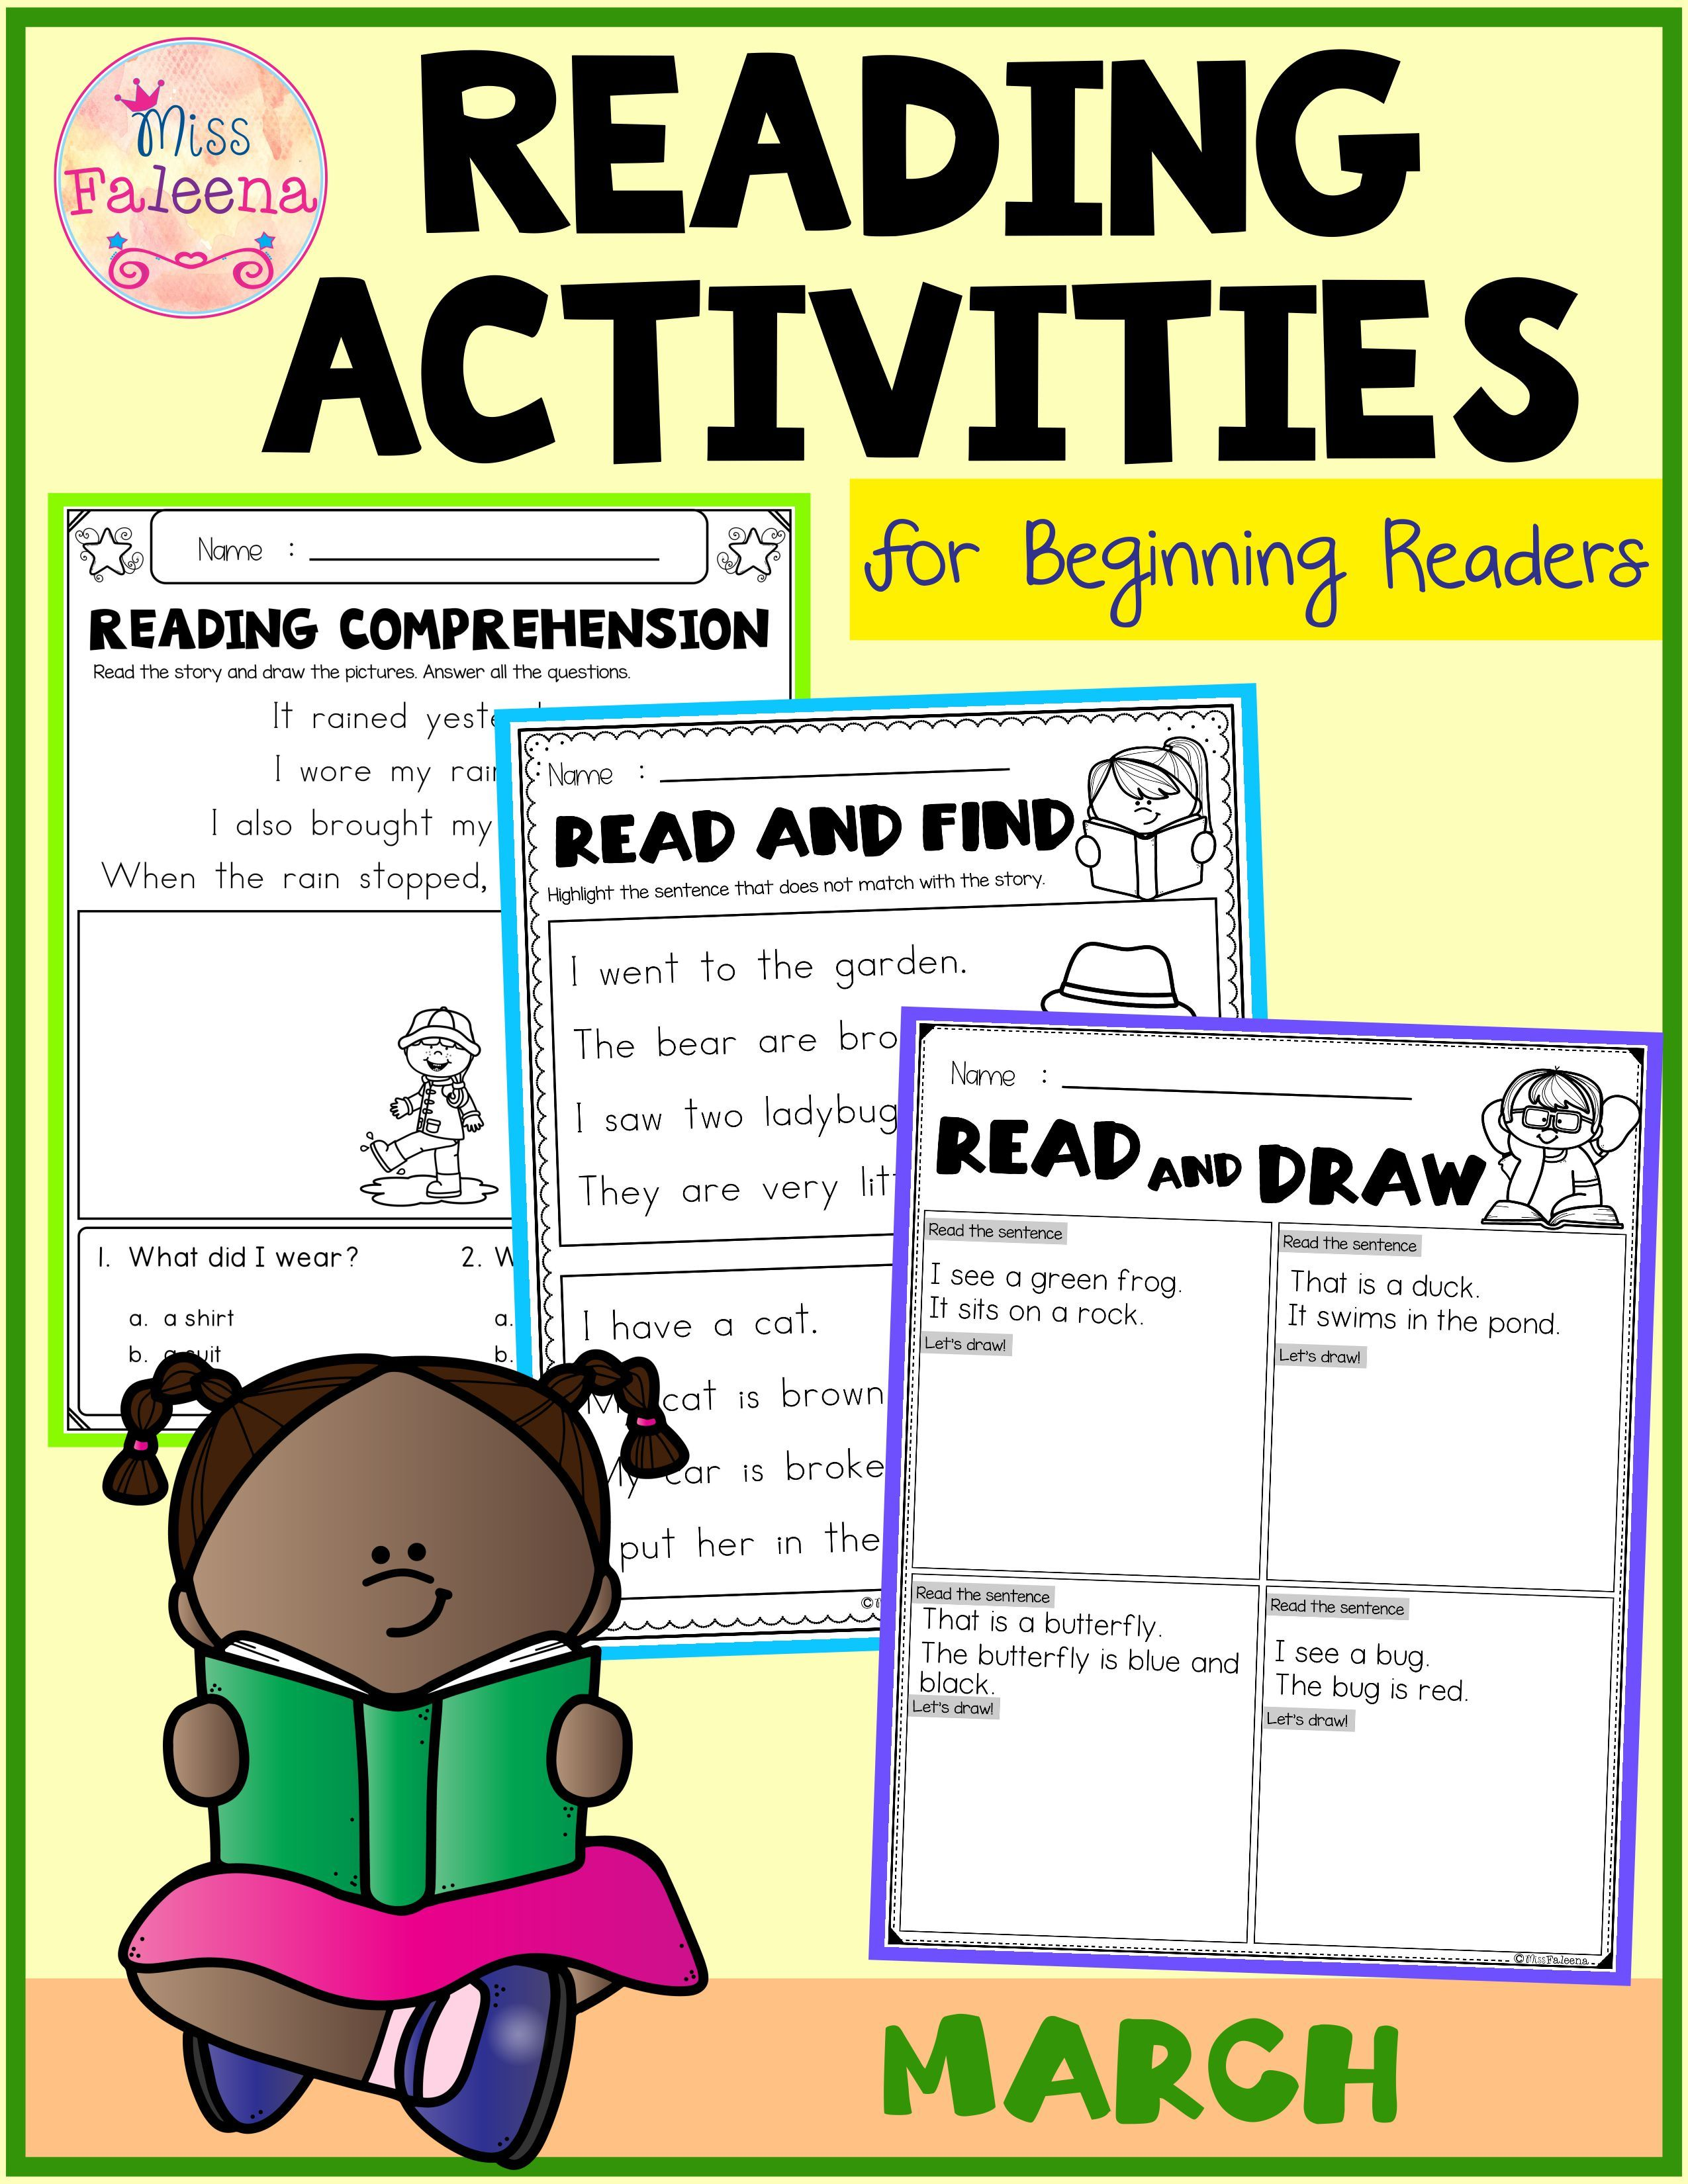 March Reading Activities For Beginning Readers